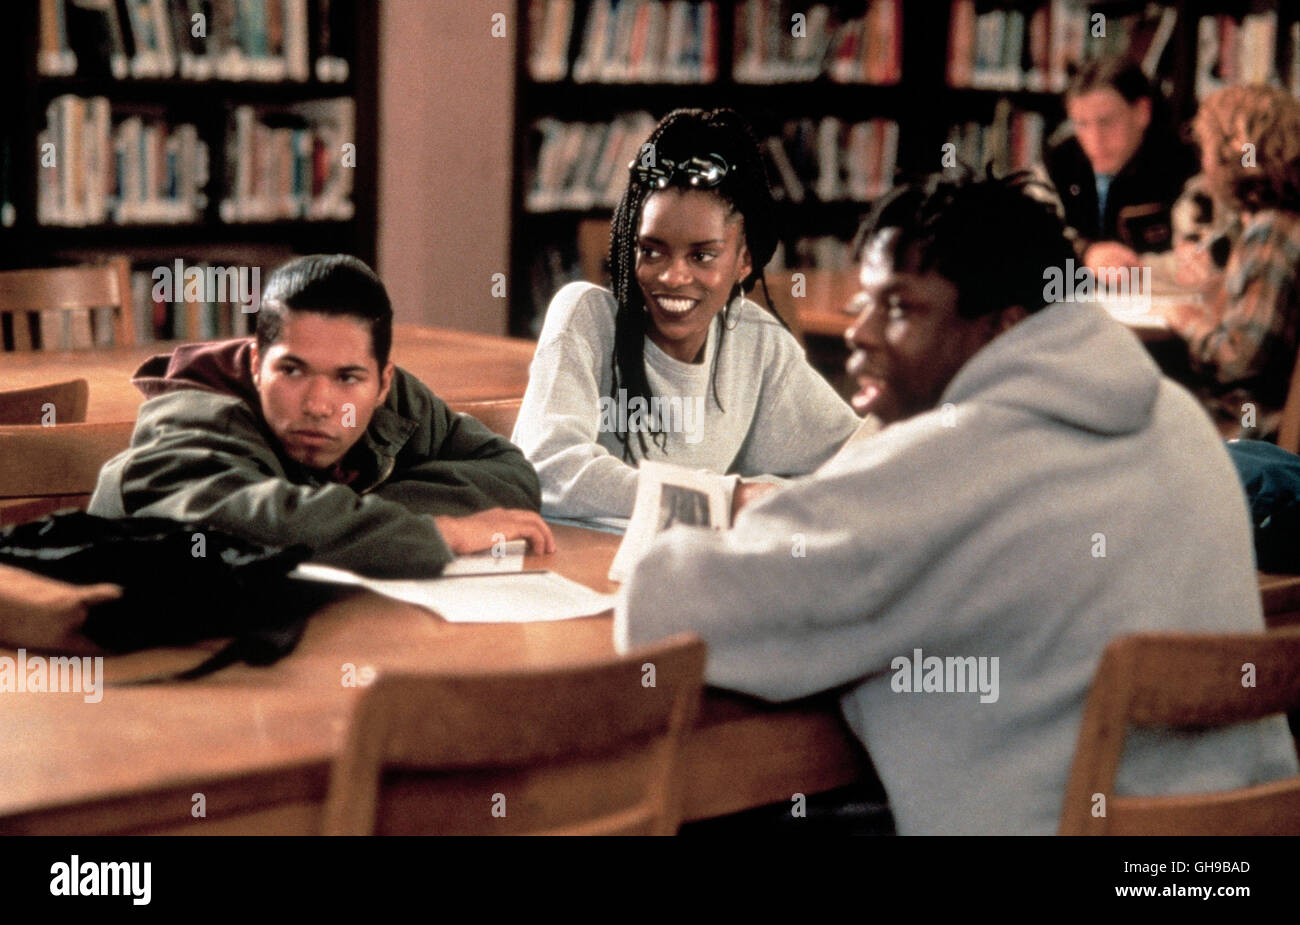 an analysis of dangerous minds a film by john n smith Dangerous minds is a 1995 american drama film directed by john n smith, and produced by don simpson and jerry bruckheimer.